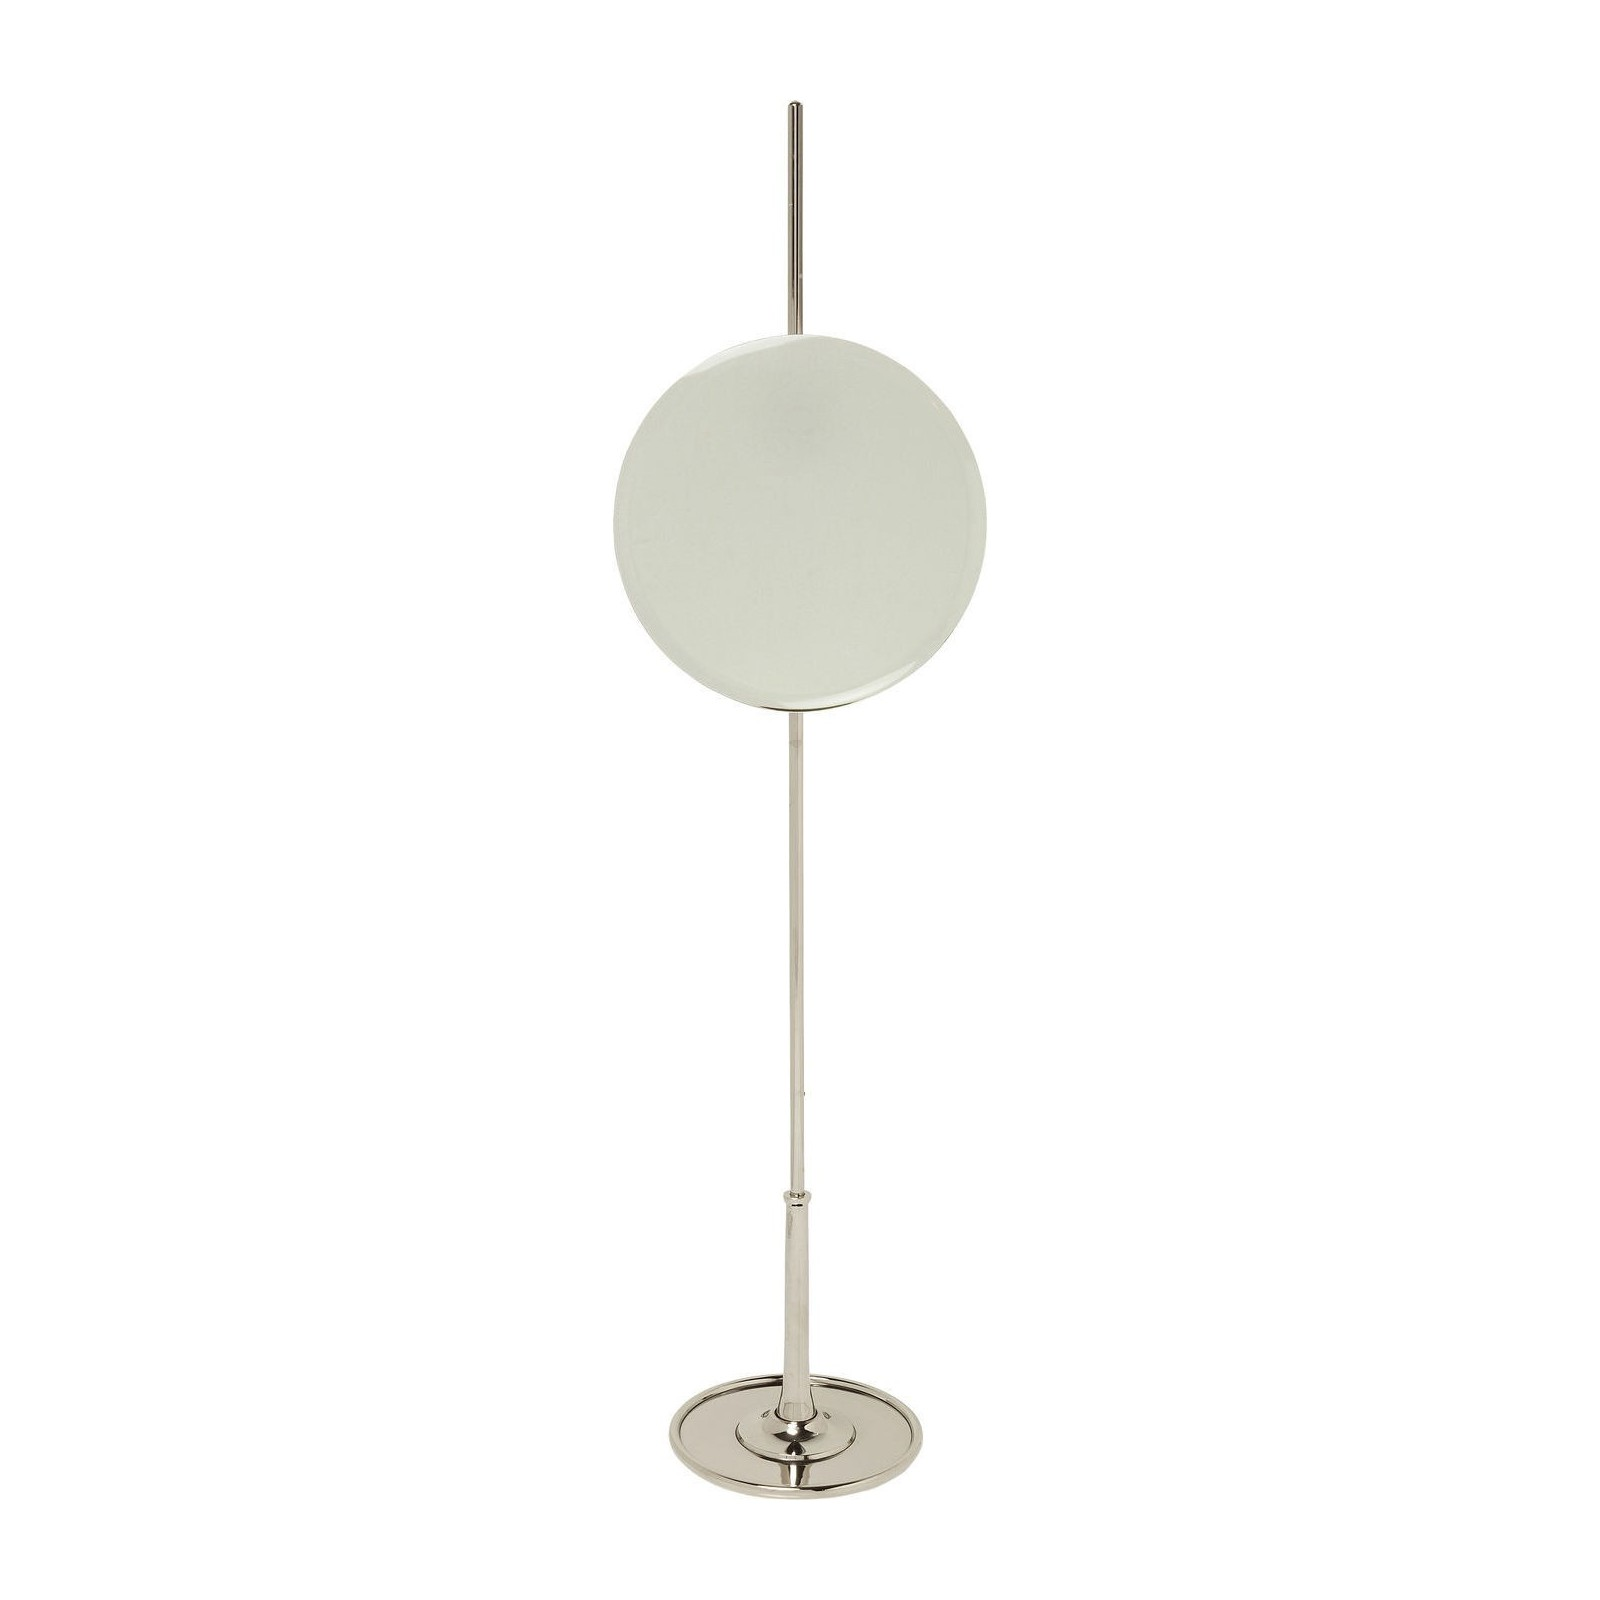 Miroir de table soho rond kare design for Miroir rond design